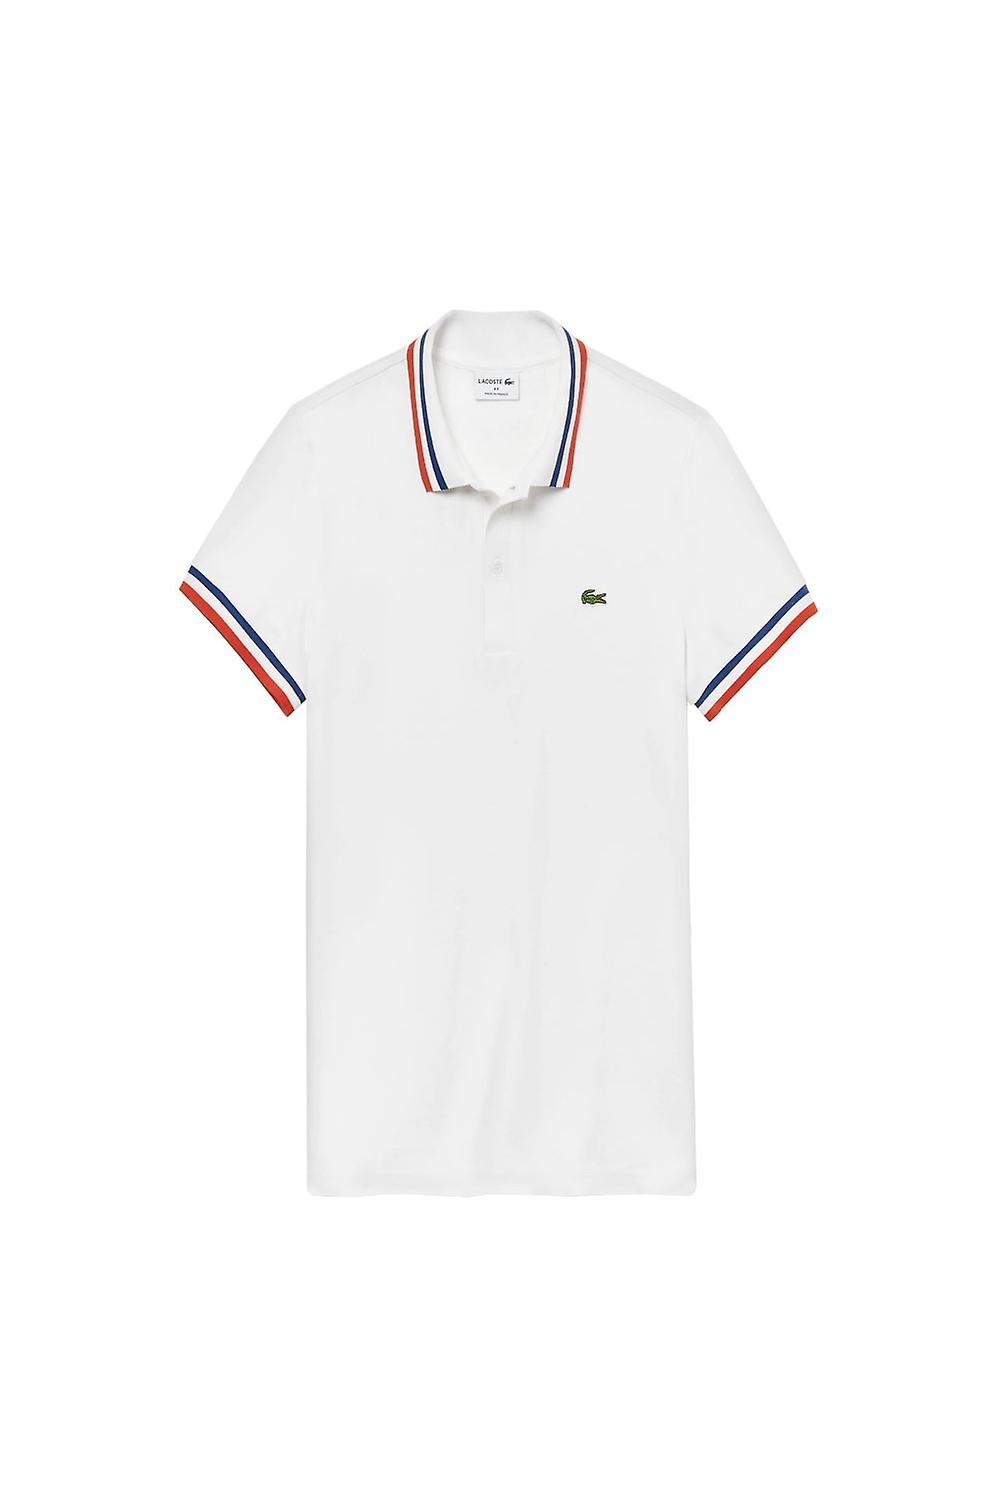 Lacoste Short Sleeved Ribbed Collar Polo Shirt White